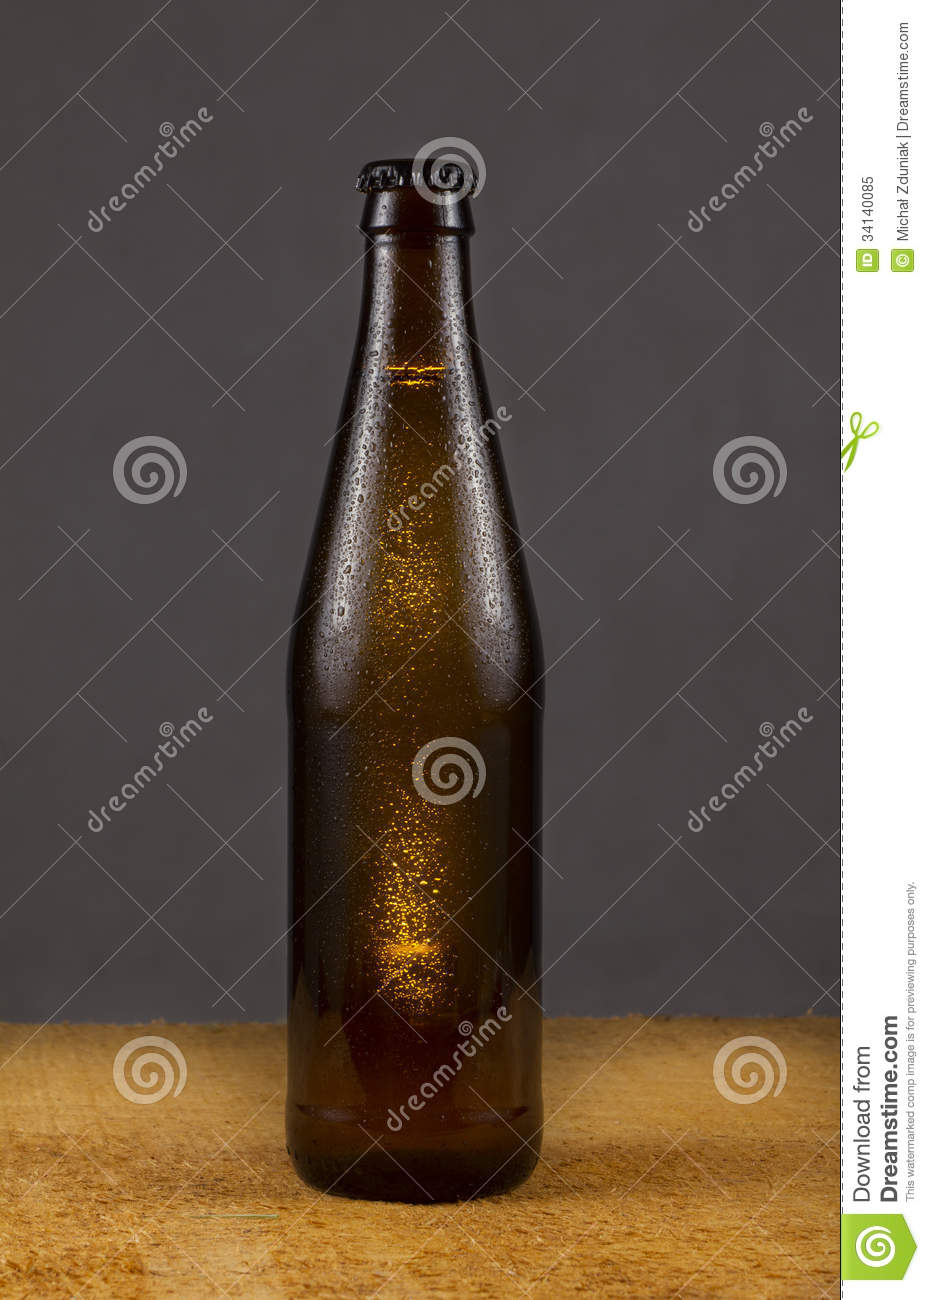 Brown beer bottle royalty free stock photo image 34140085